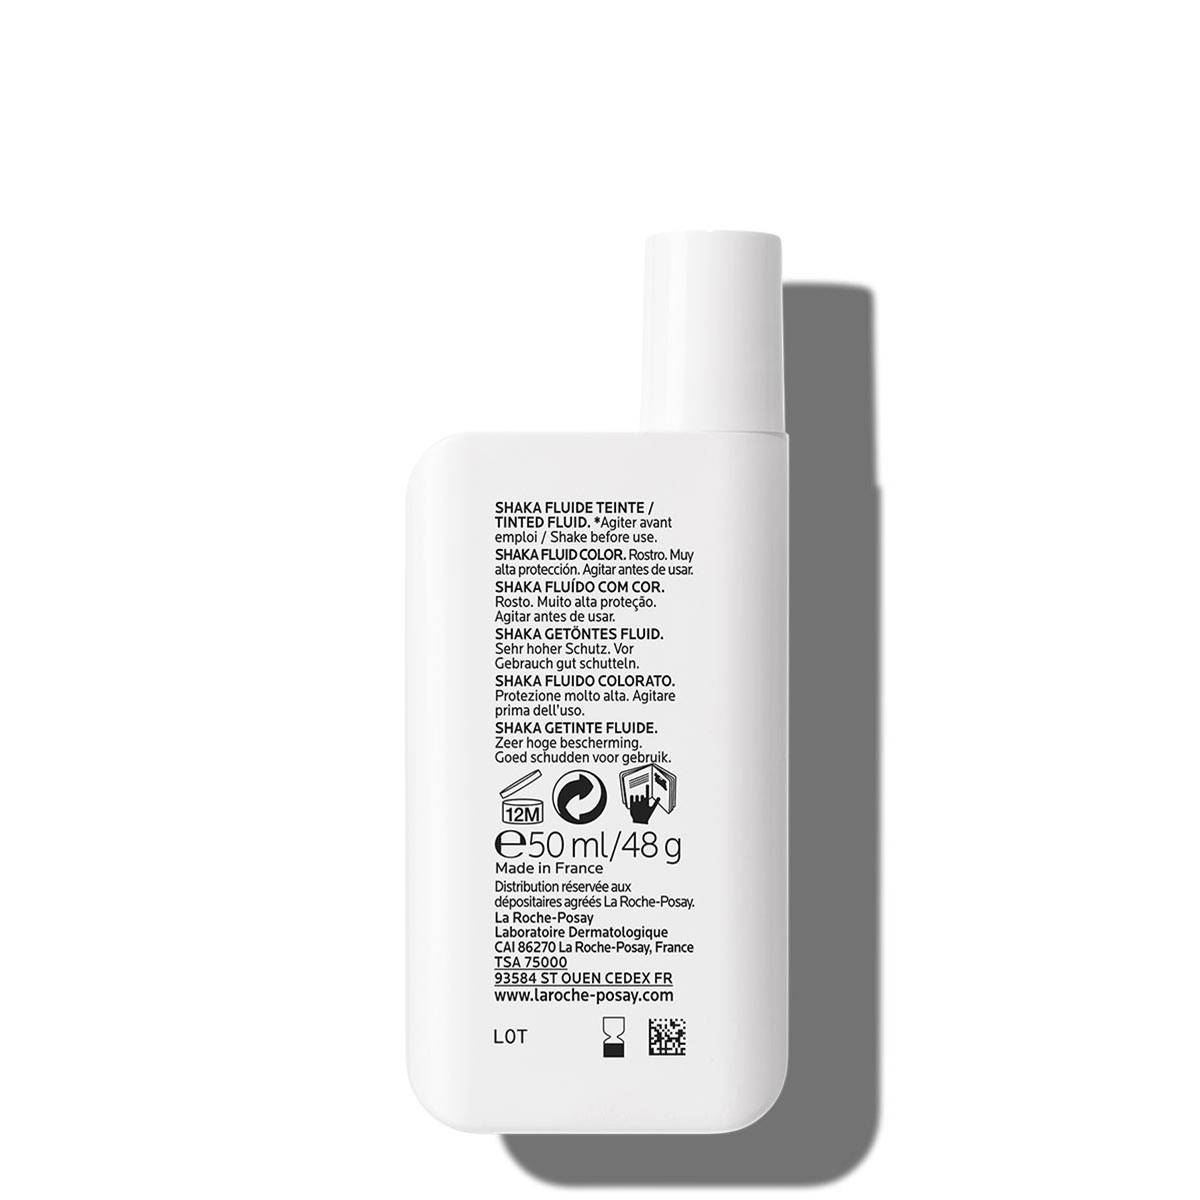 La Roche Posay ProductPage Sun Anthelios Shaka Fluid Tinted Spf50 50ml